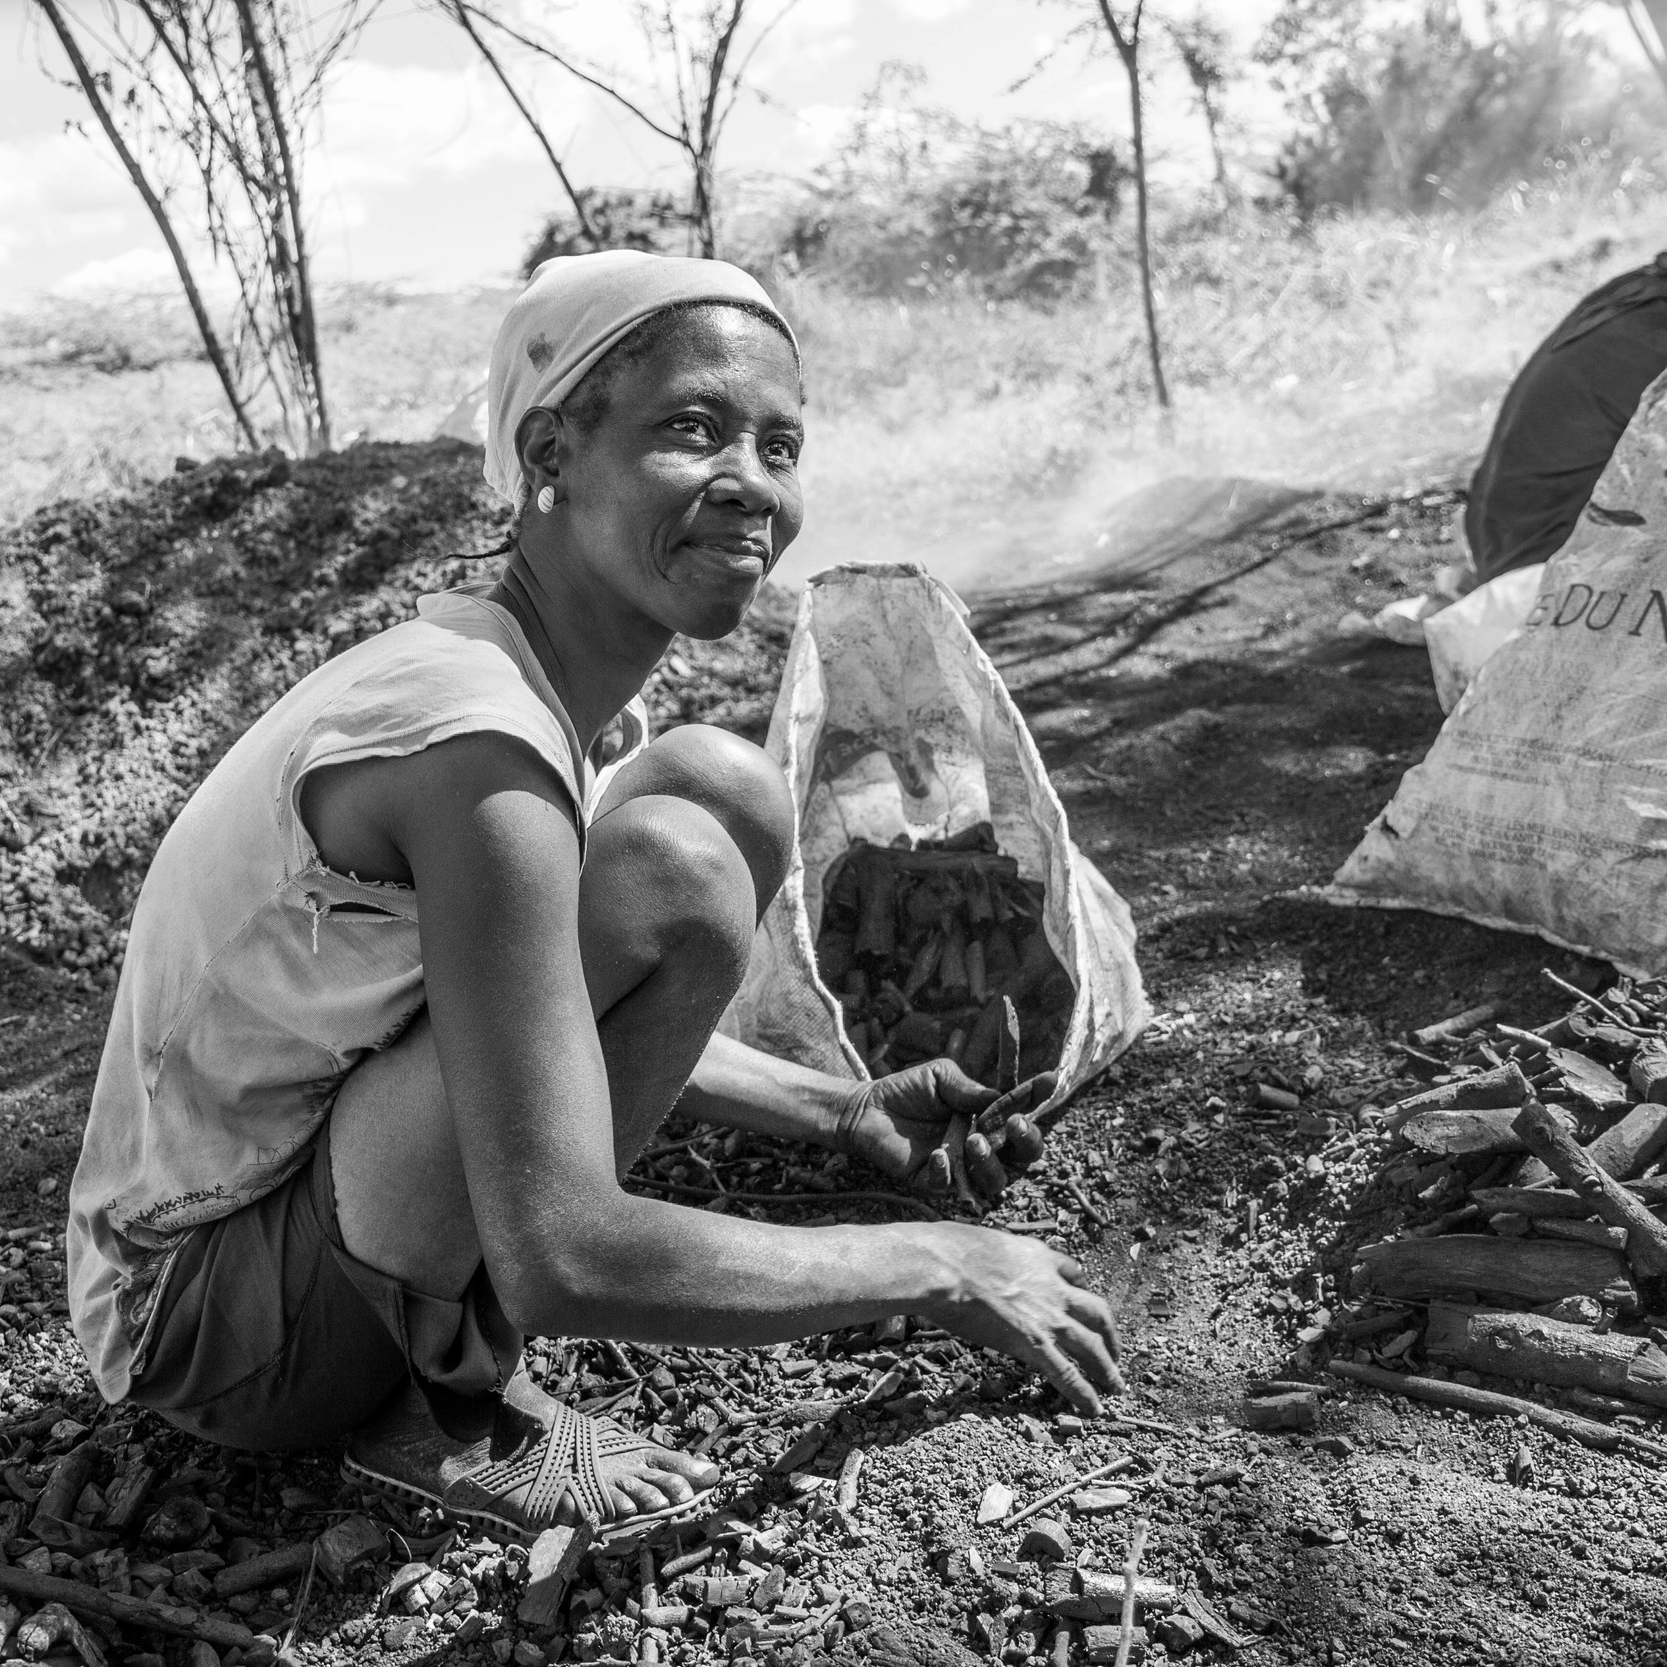 Woman charcoal producer harvesting wood charcoal